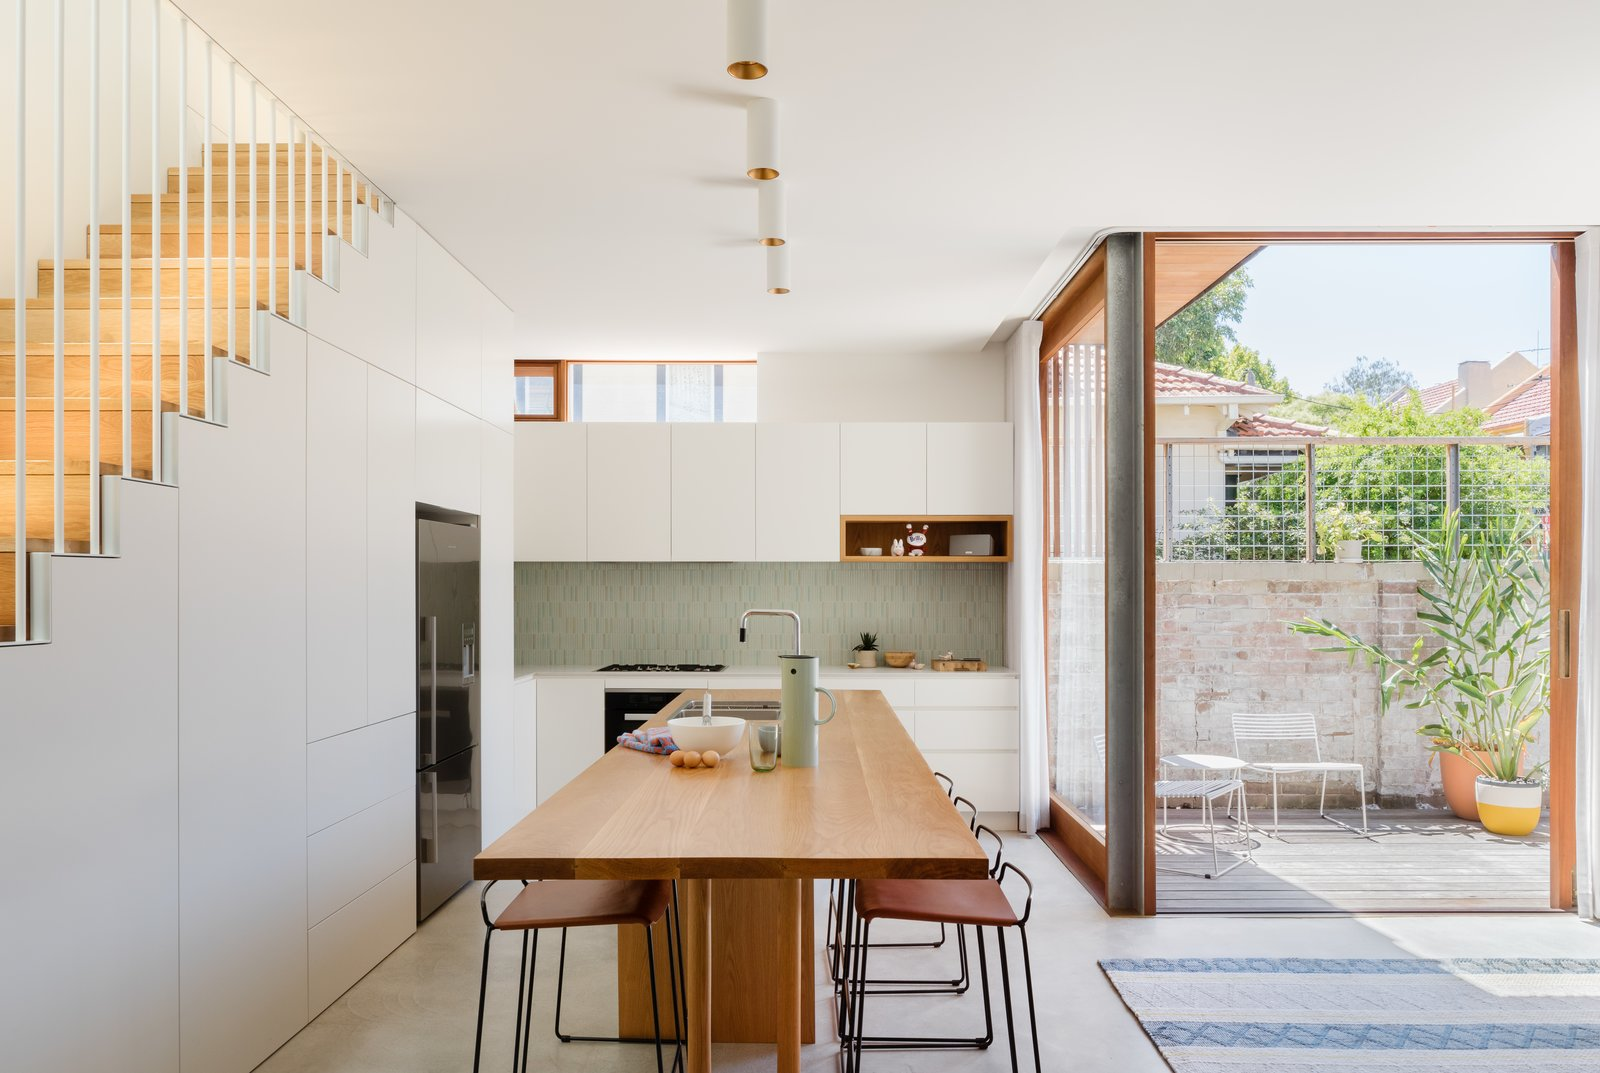 This Revamped Cottage Is a Modern Take on Traditional Japanese Townhouses